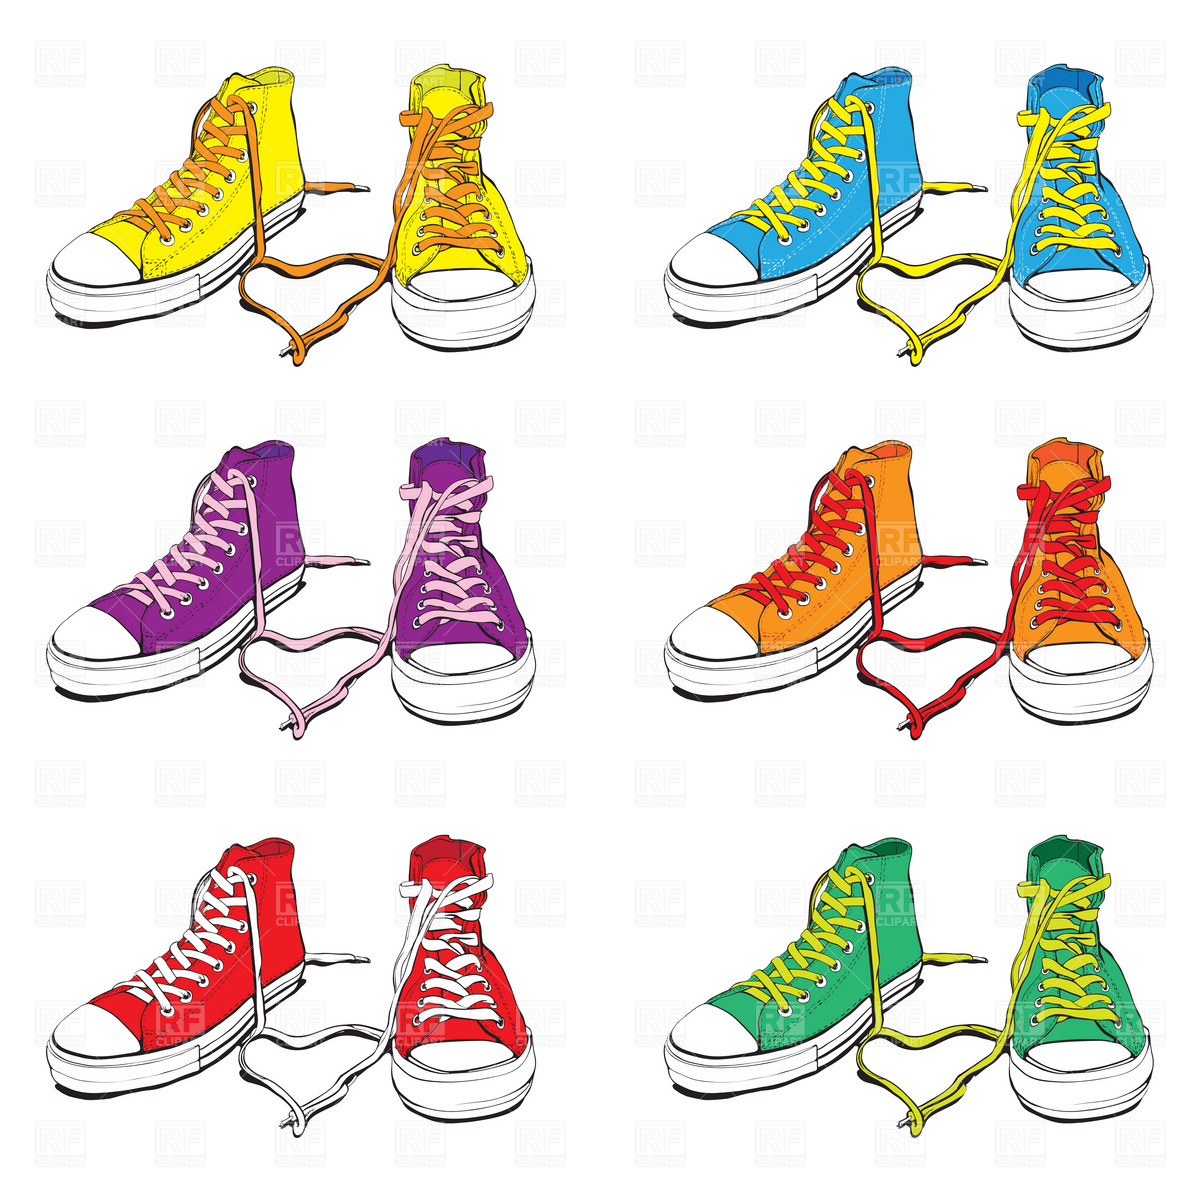 Tennis shoe border clipart clipart black and white stock Free Tennis Shoe Cliparts, Download Free Clip Art, Free Clip ... clipart black and white stock